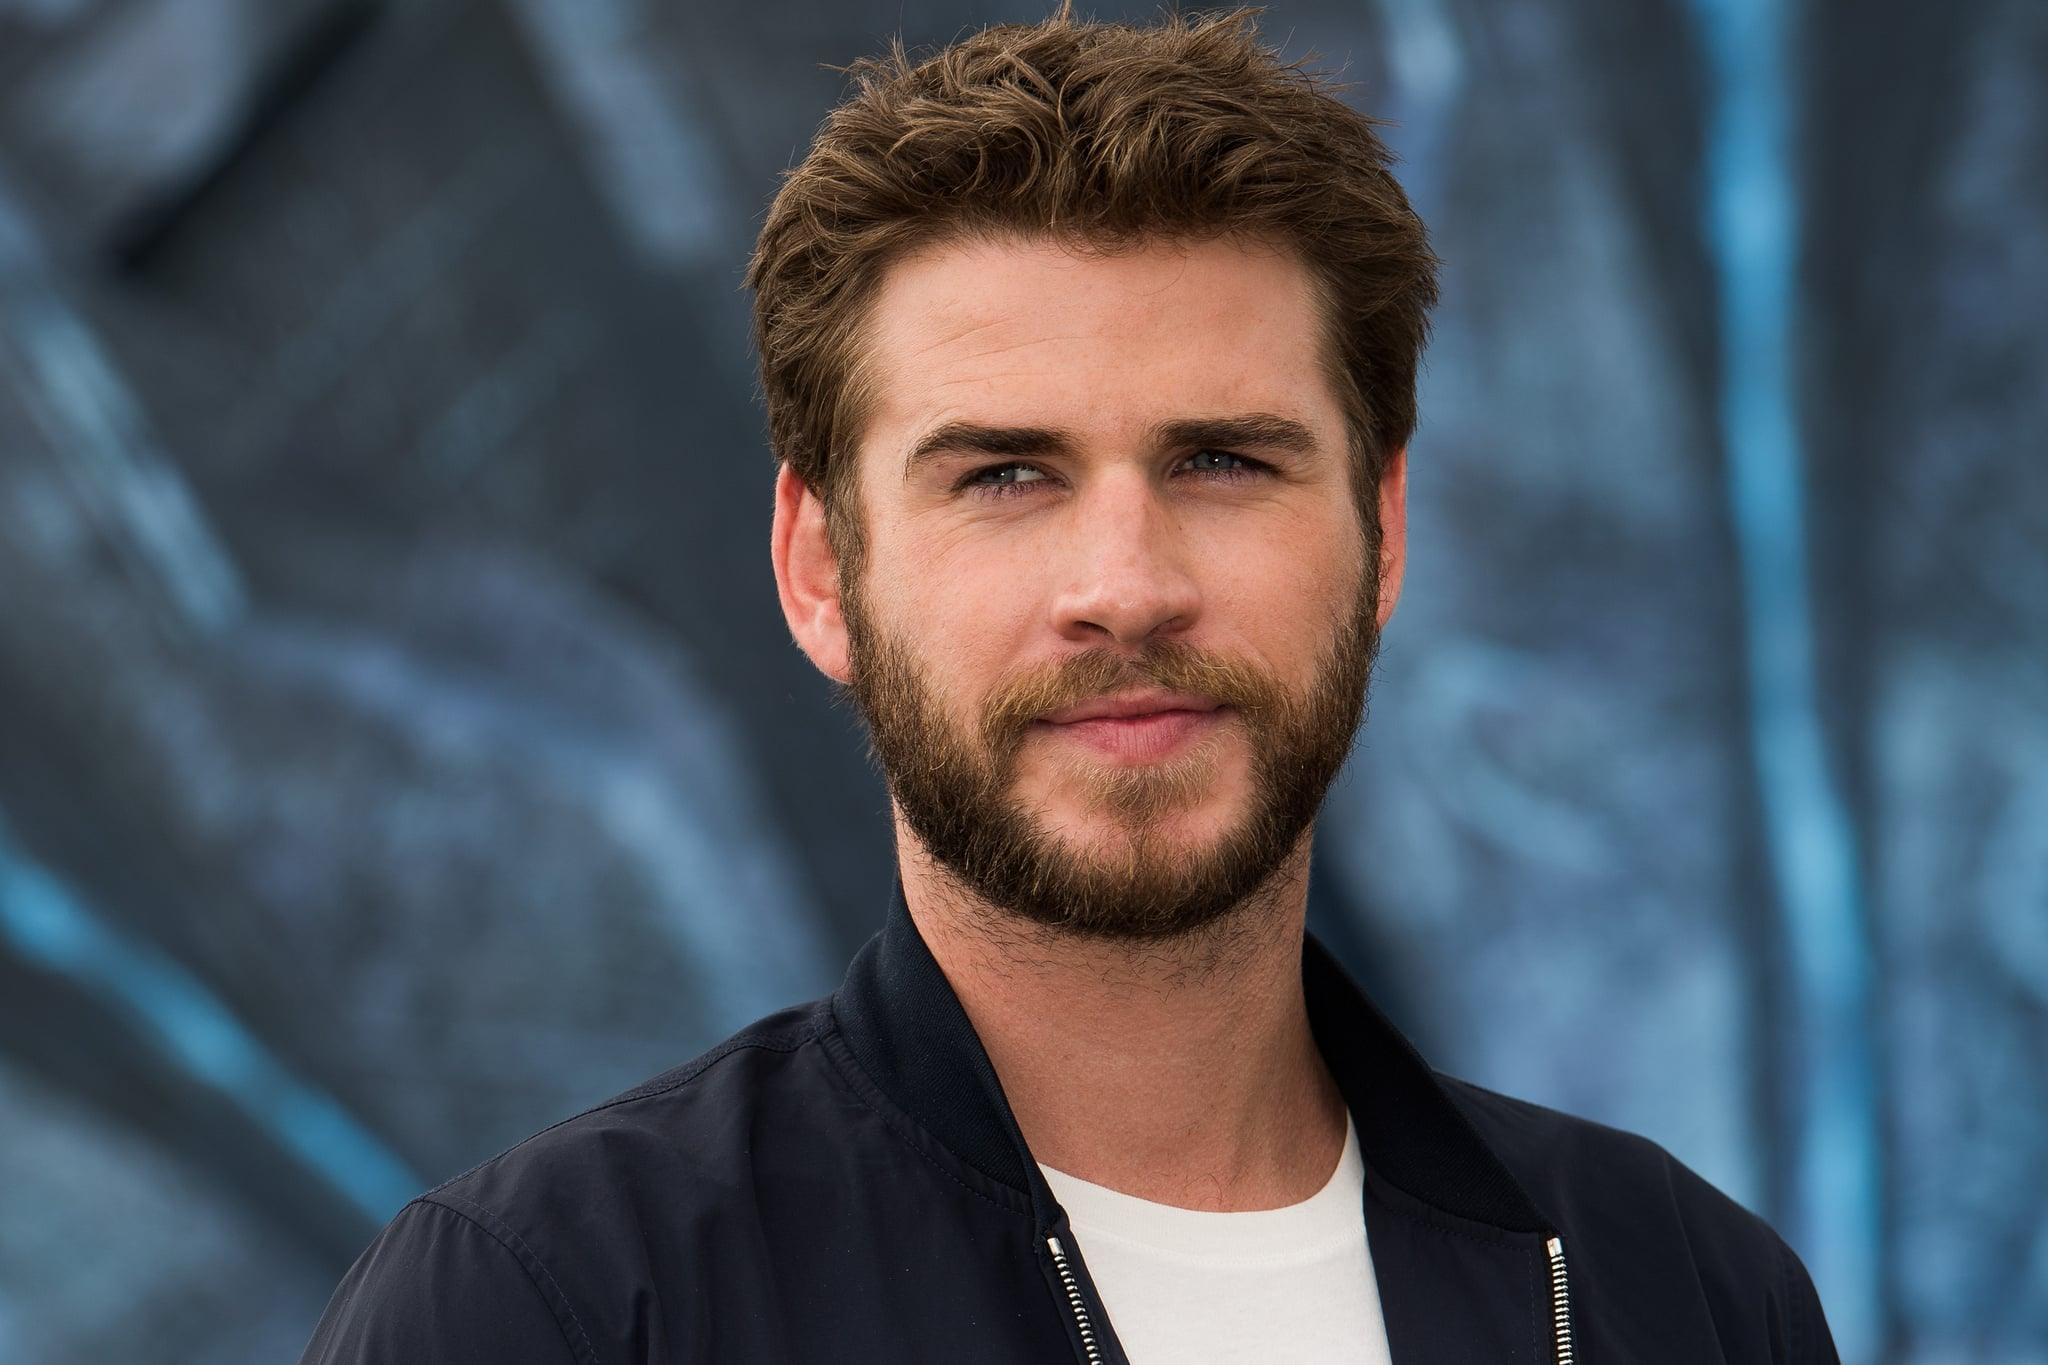 BERLIN, GERMANY - JUNE 09:  Liam Hemsworth during the 'Independence Day' Berlin Photo Call on June 9, 2016 in Berlin, Germany.  (Photo by Matthias Nareyek/Getty Images)